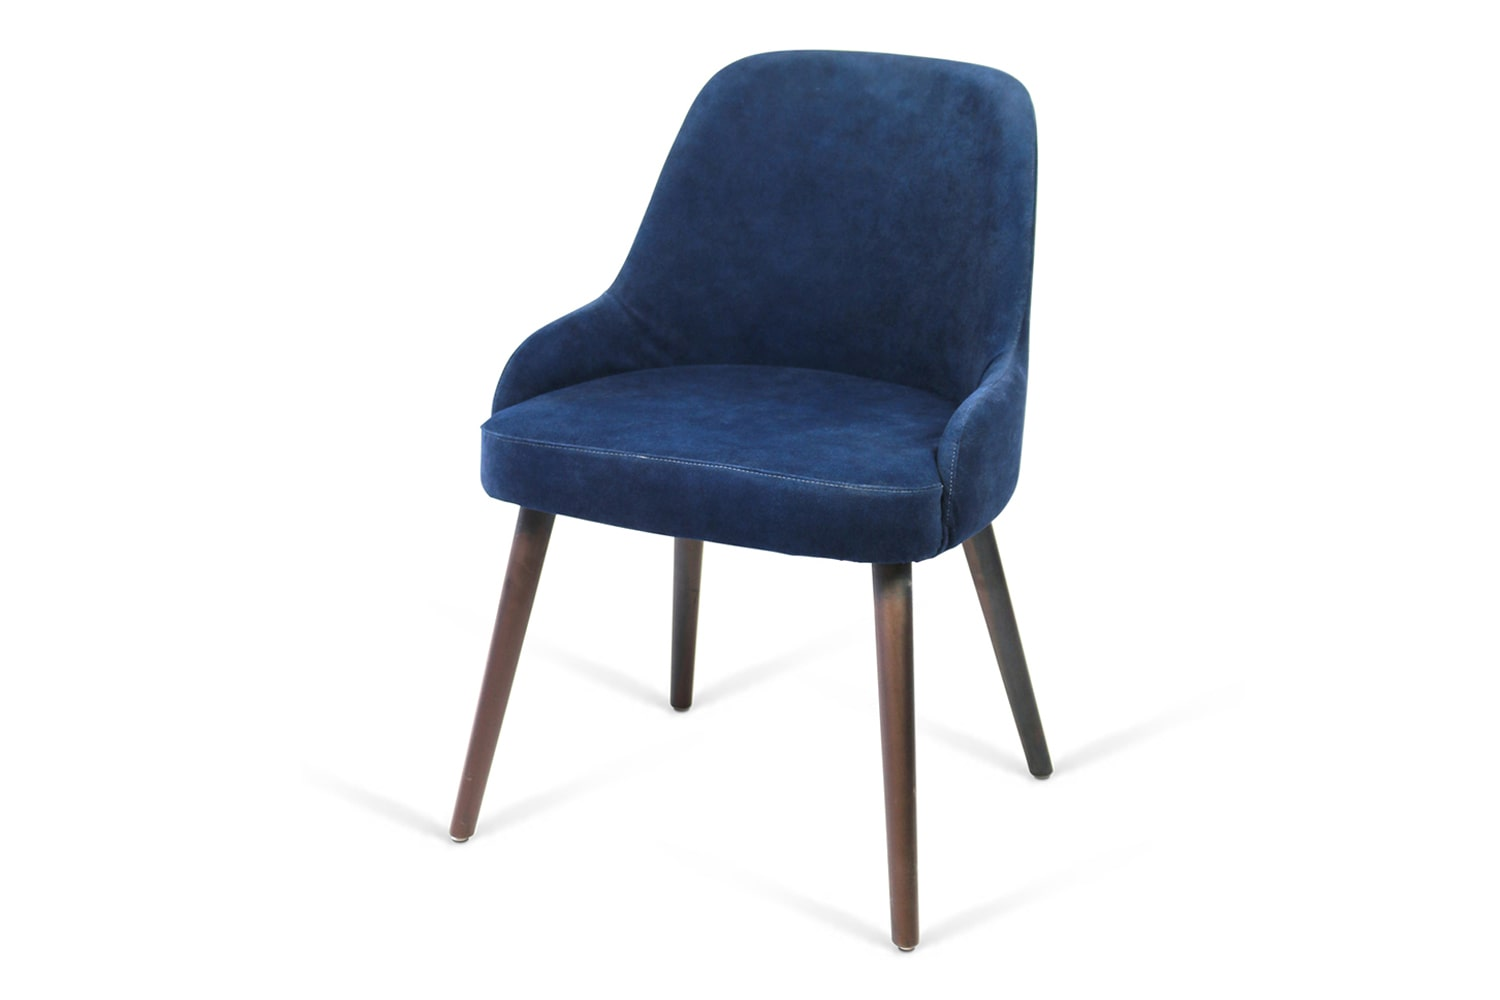 GENEVA <span class='notbold'>SIDE CHAIR</span>